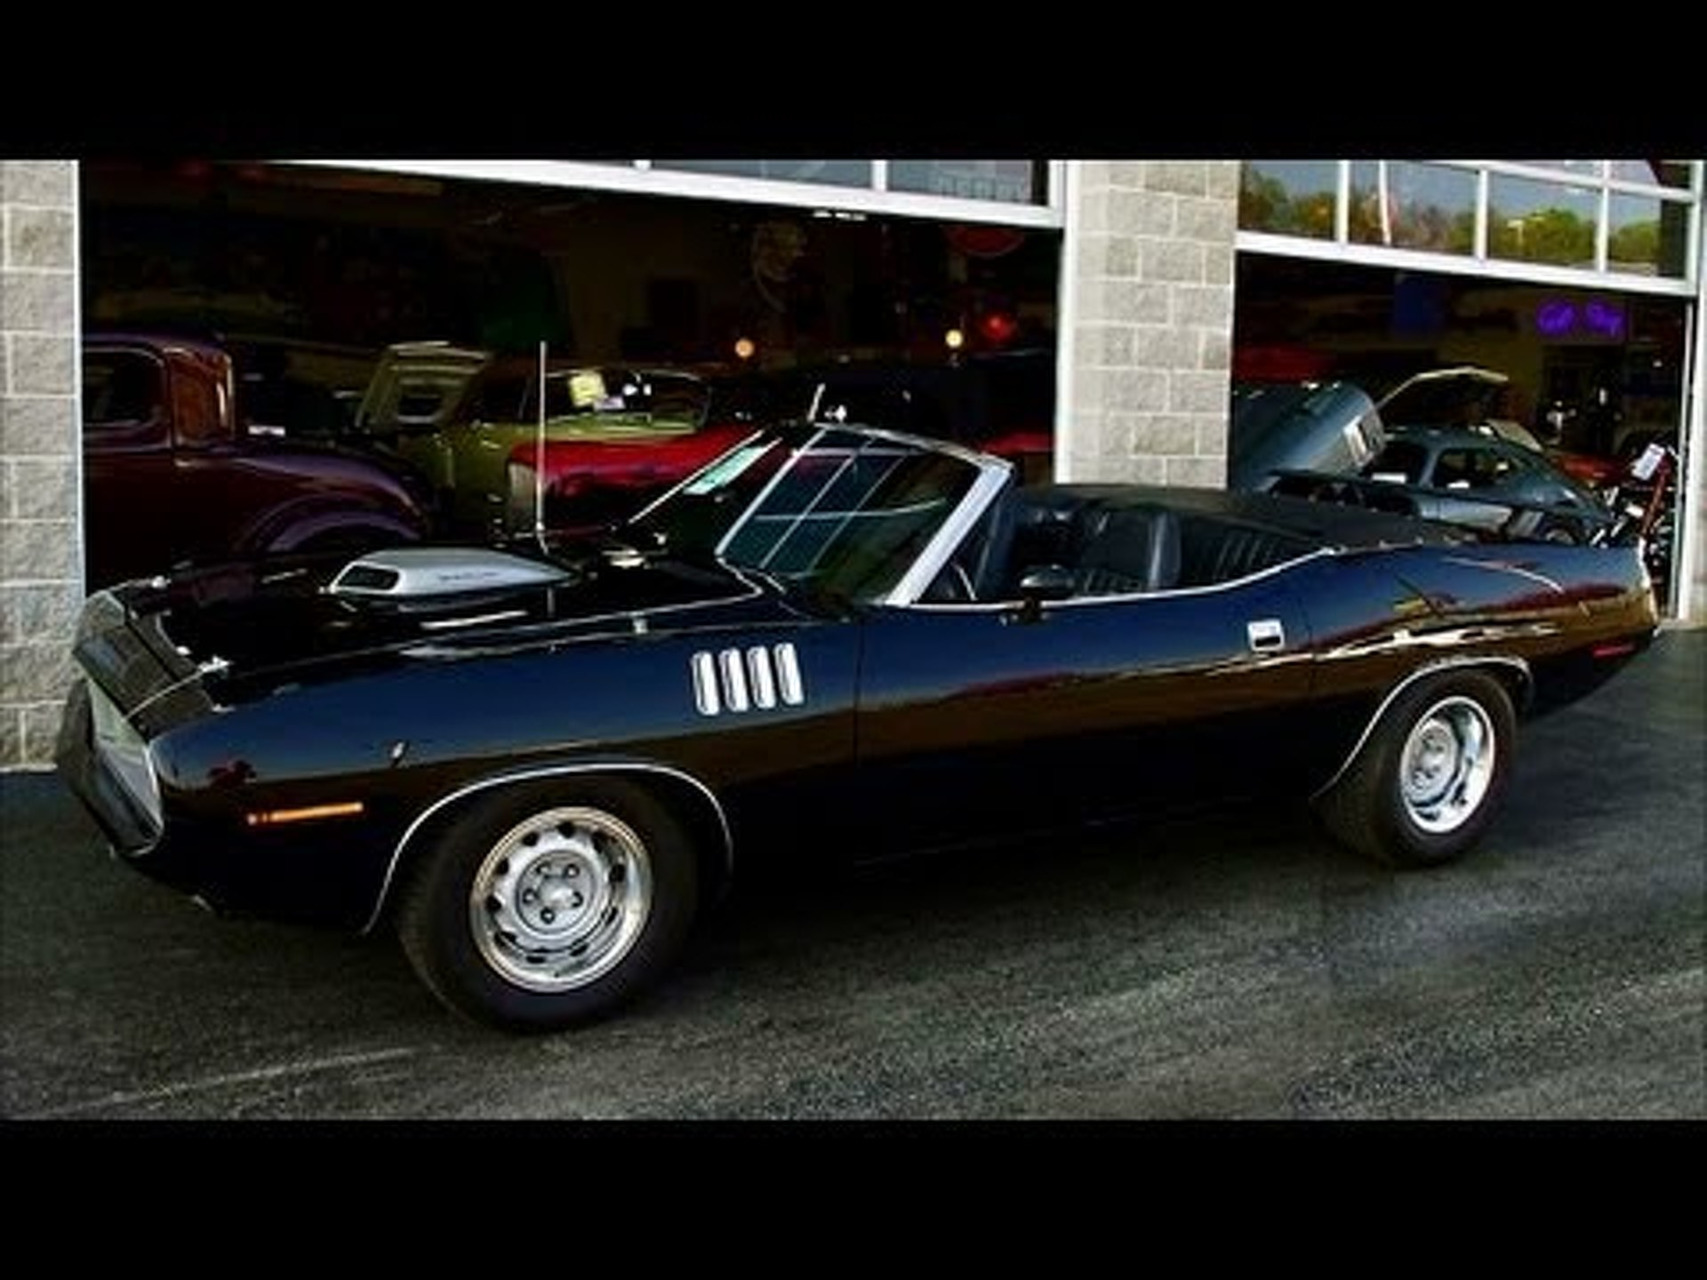 1971 Plymouth Barracuda 440 V8 Triple Black Convertible